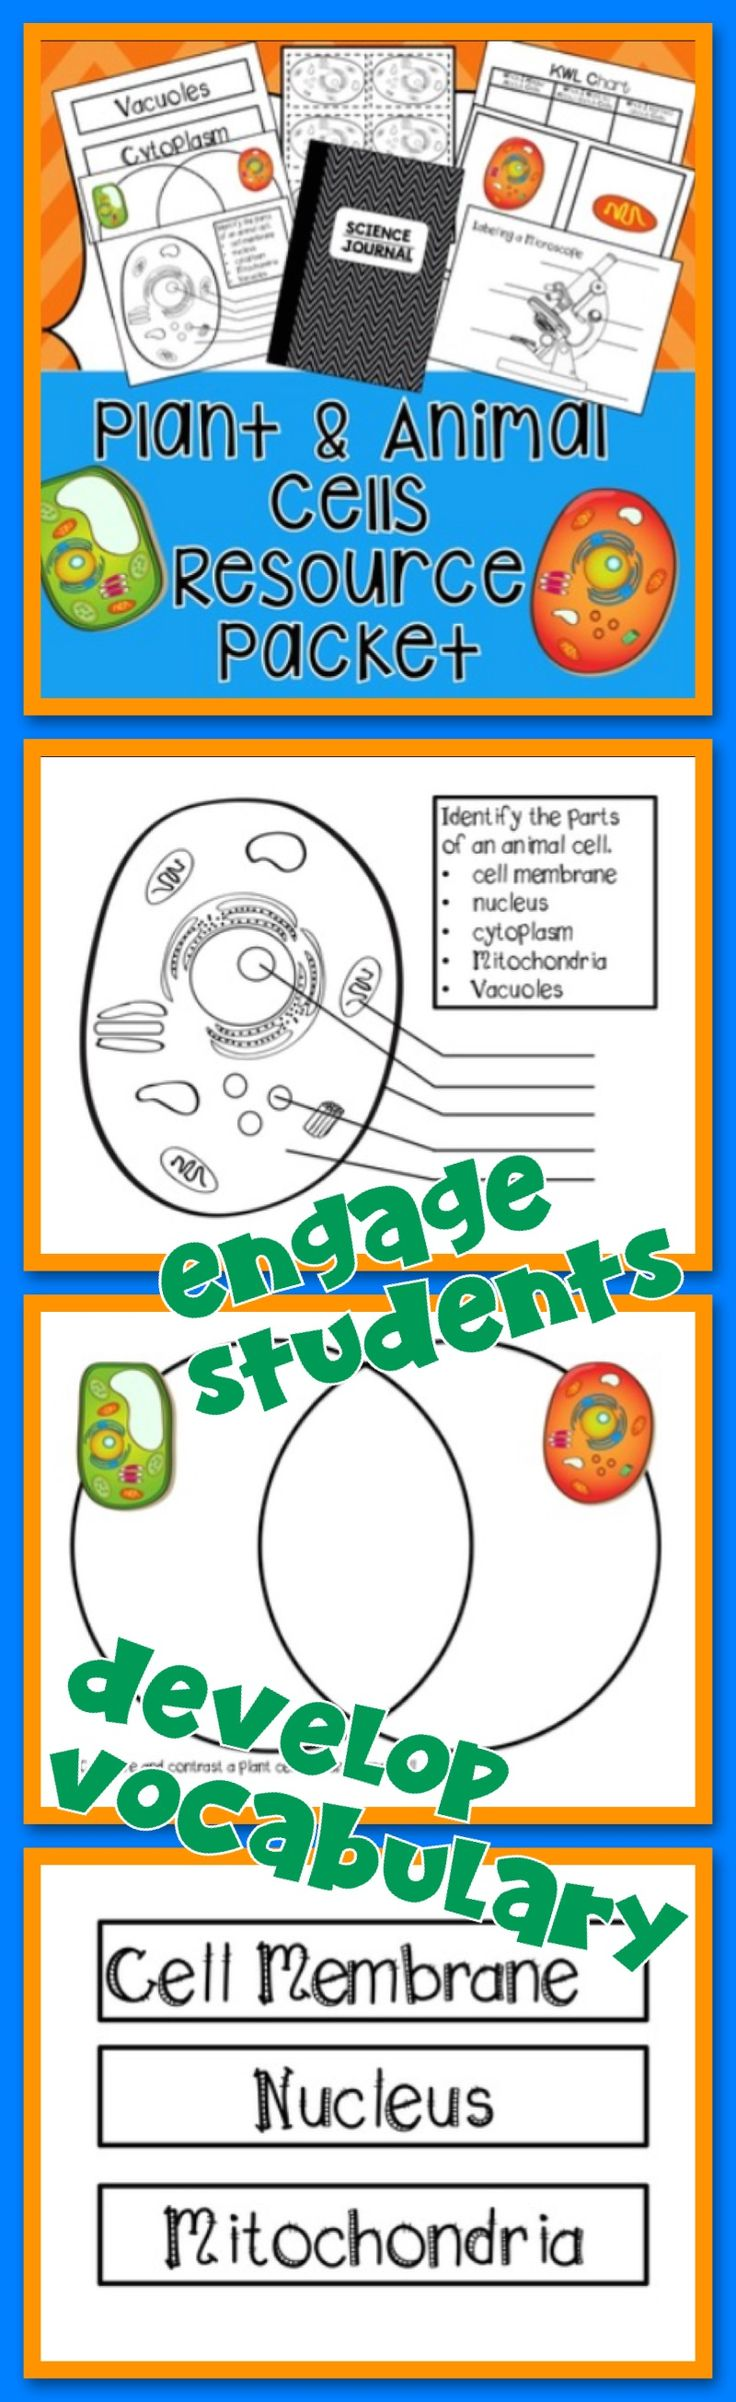 Animal and Plant Cells Unit is an engaging and hands on unit that can supplement activities to your science curriculum. Vocabulary development and cell function are keys in learning about plants and animal cells. Interactive journaling and comparing animal and plant cells will help students understand the key differences of cells.